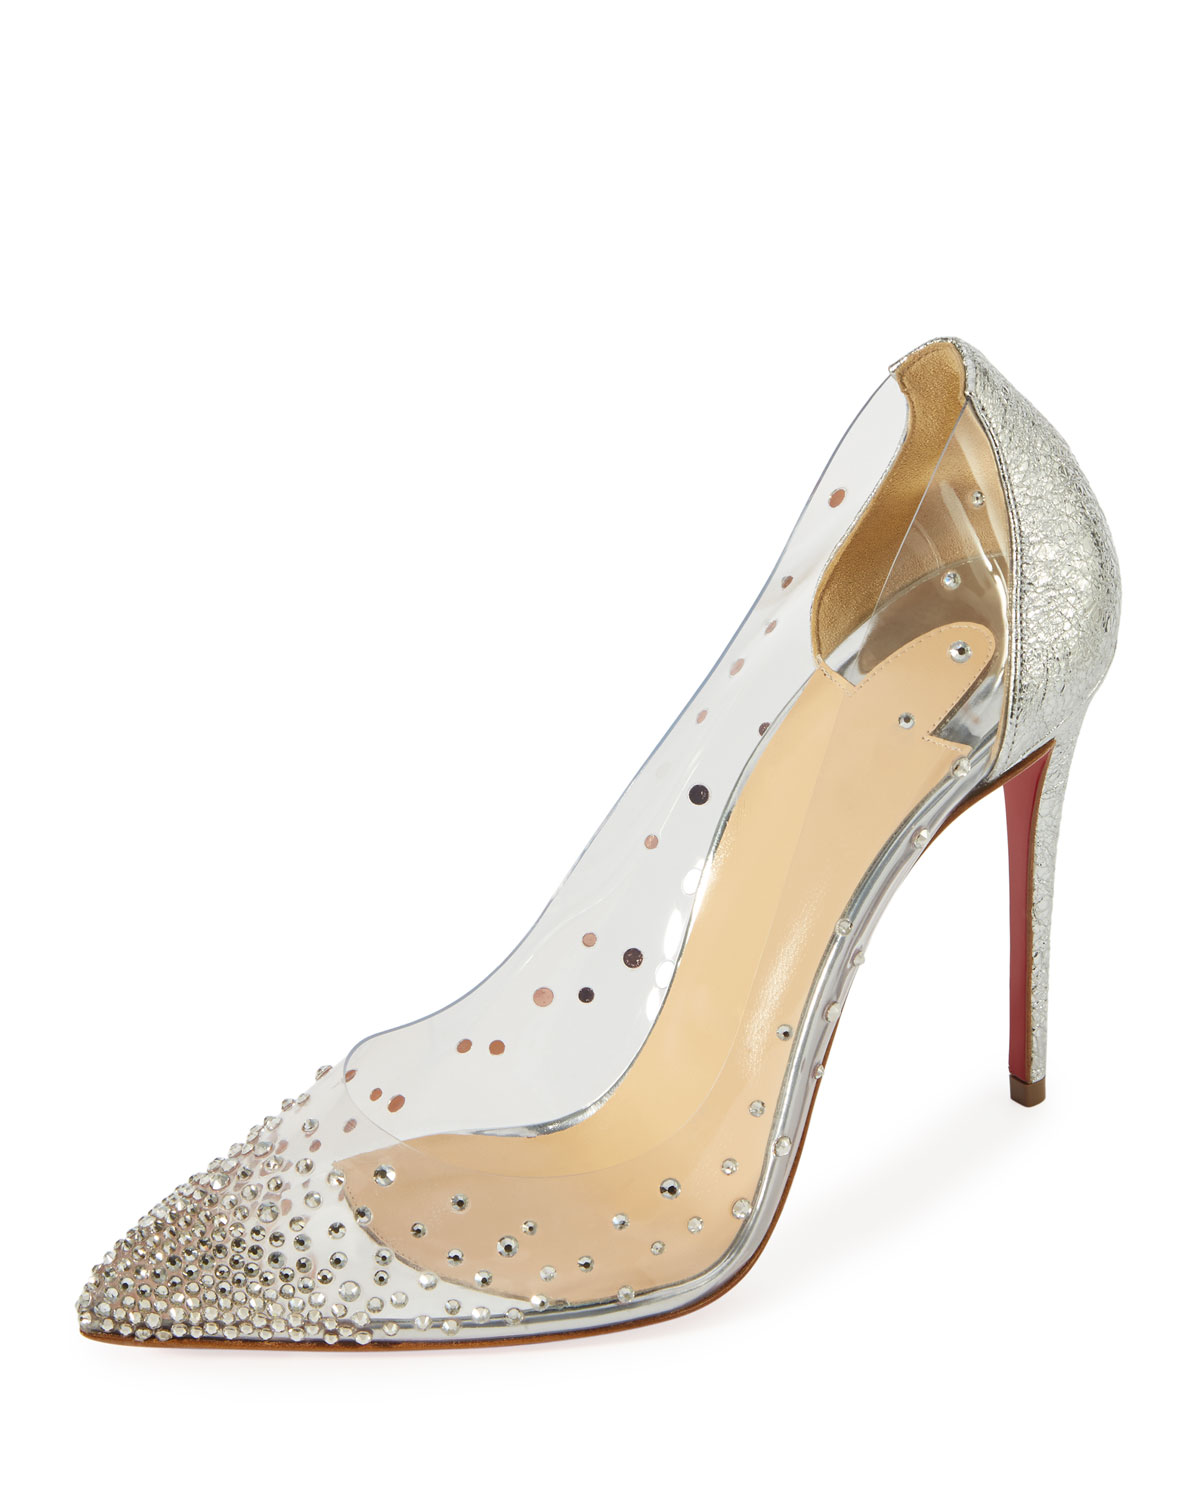 dd91202c3af Christian Louboutin Degrastrass Vinyl 100mm Red Sole Pump